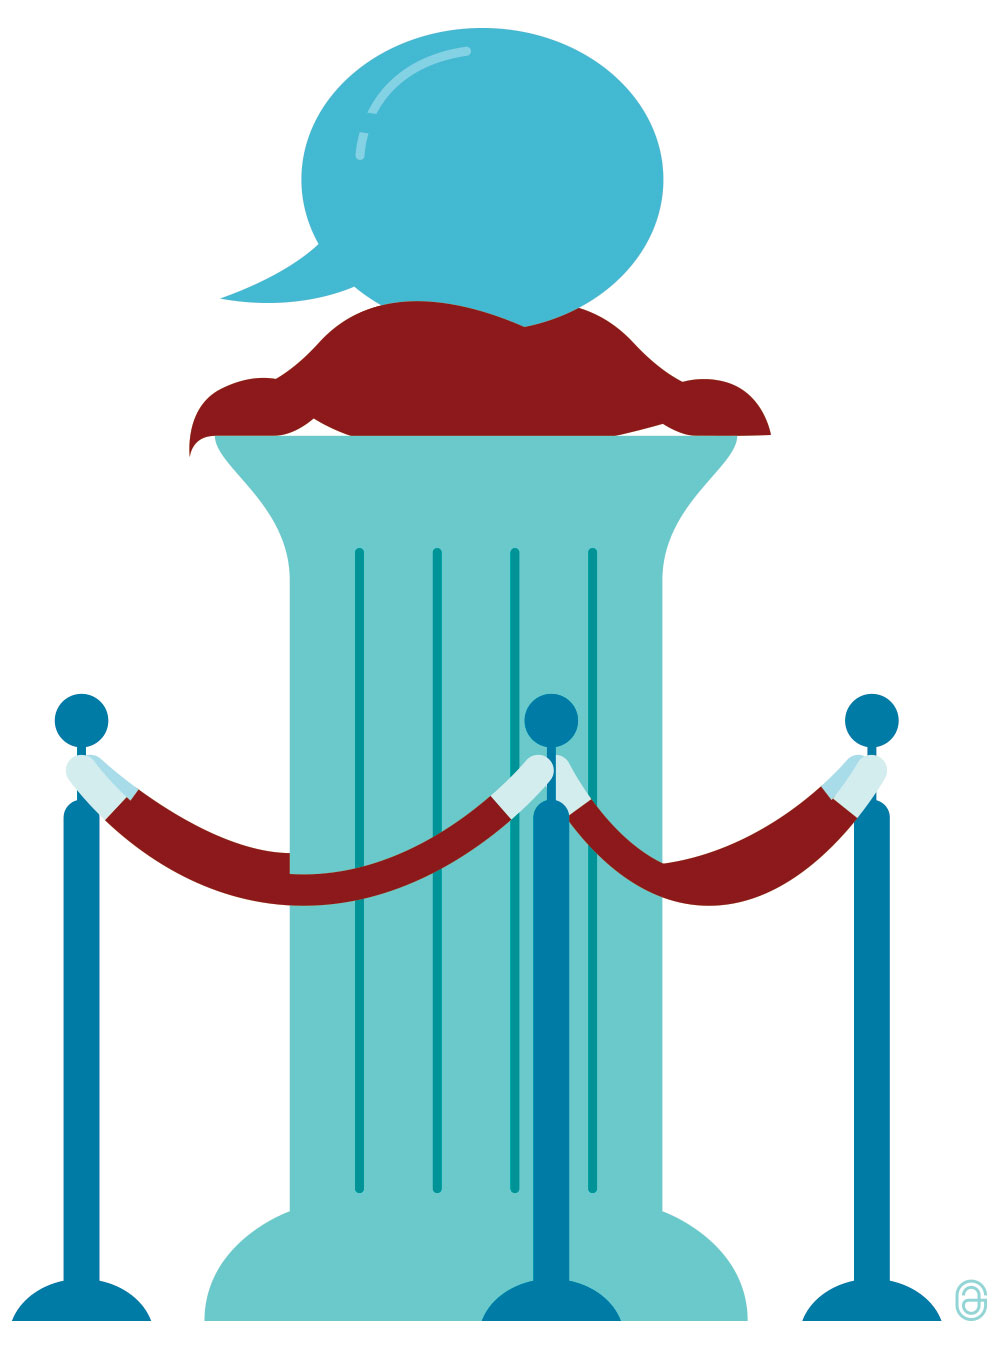 Illustration of a blue speech bubble resting on top of a column, surrounded by a red velvet rope.